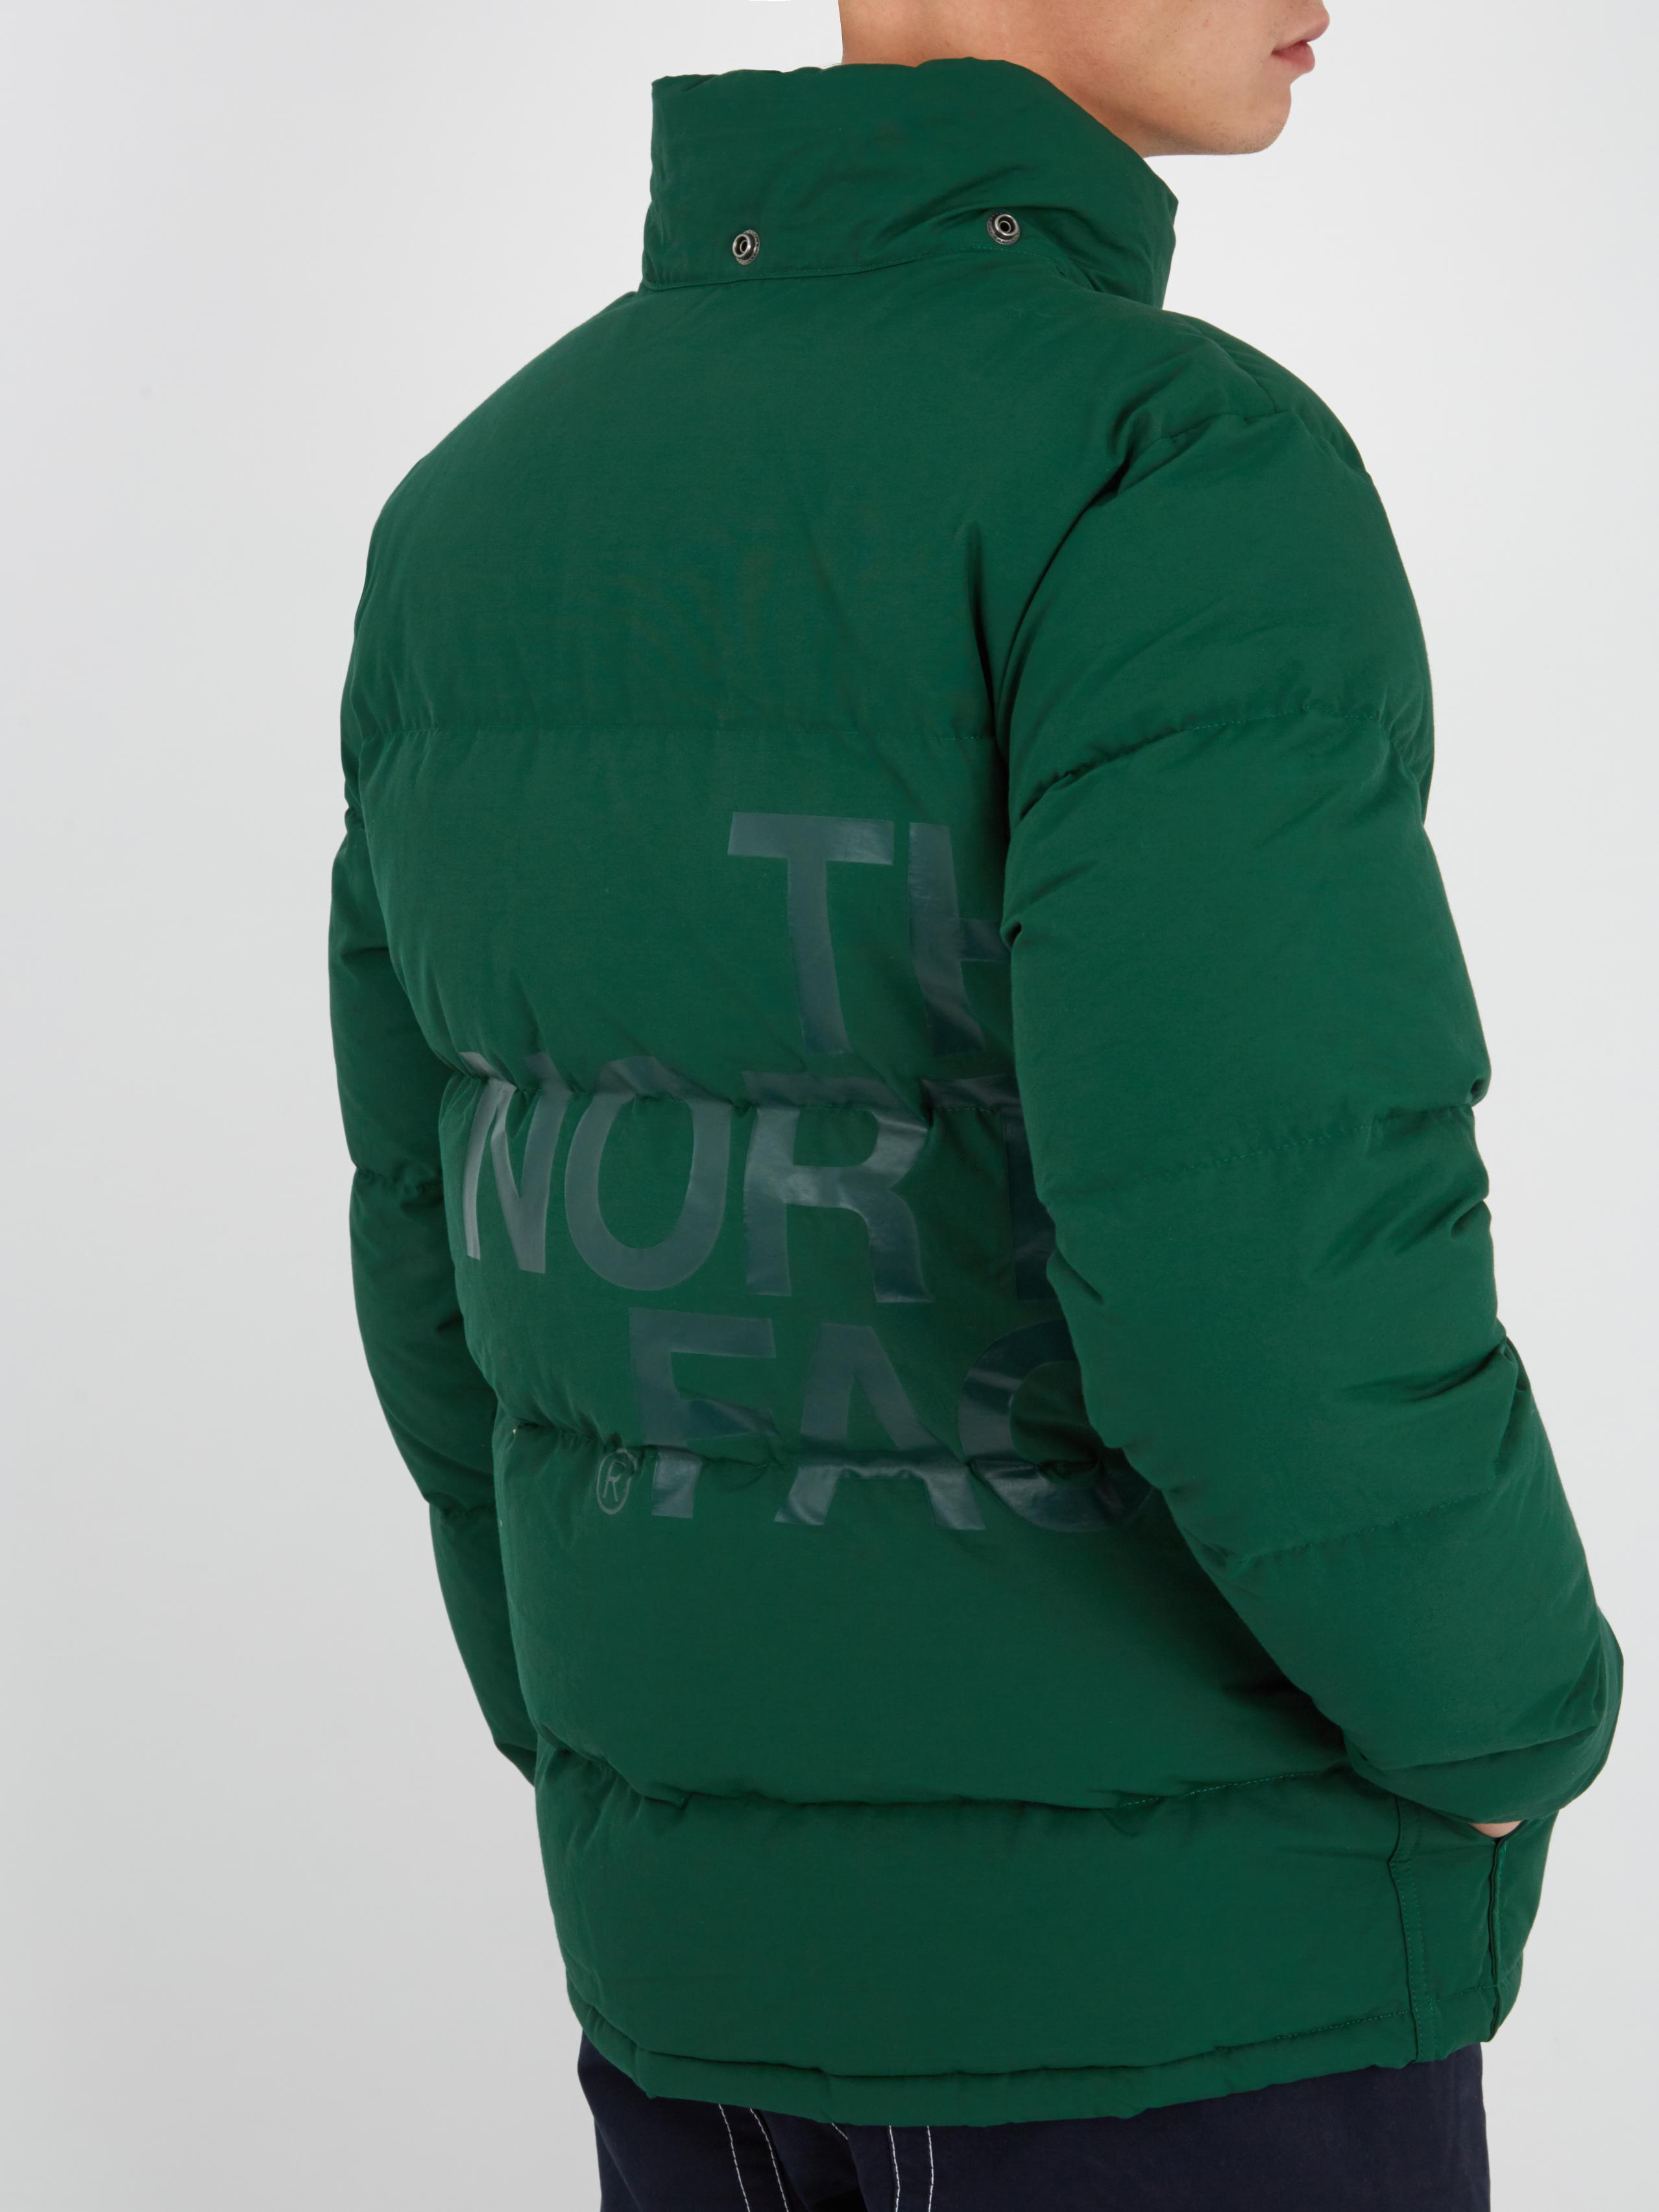 Junya Watanabe Cotton X The North Face Quilted Down Jacket in Green for Men